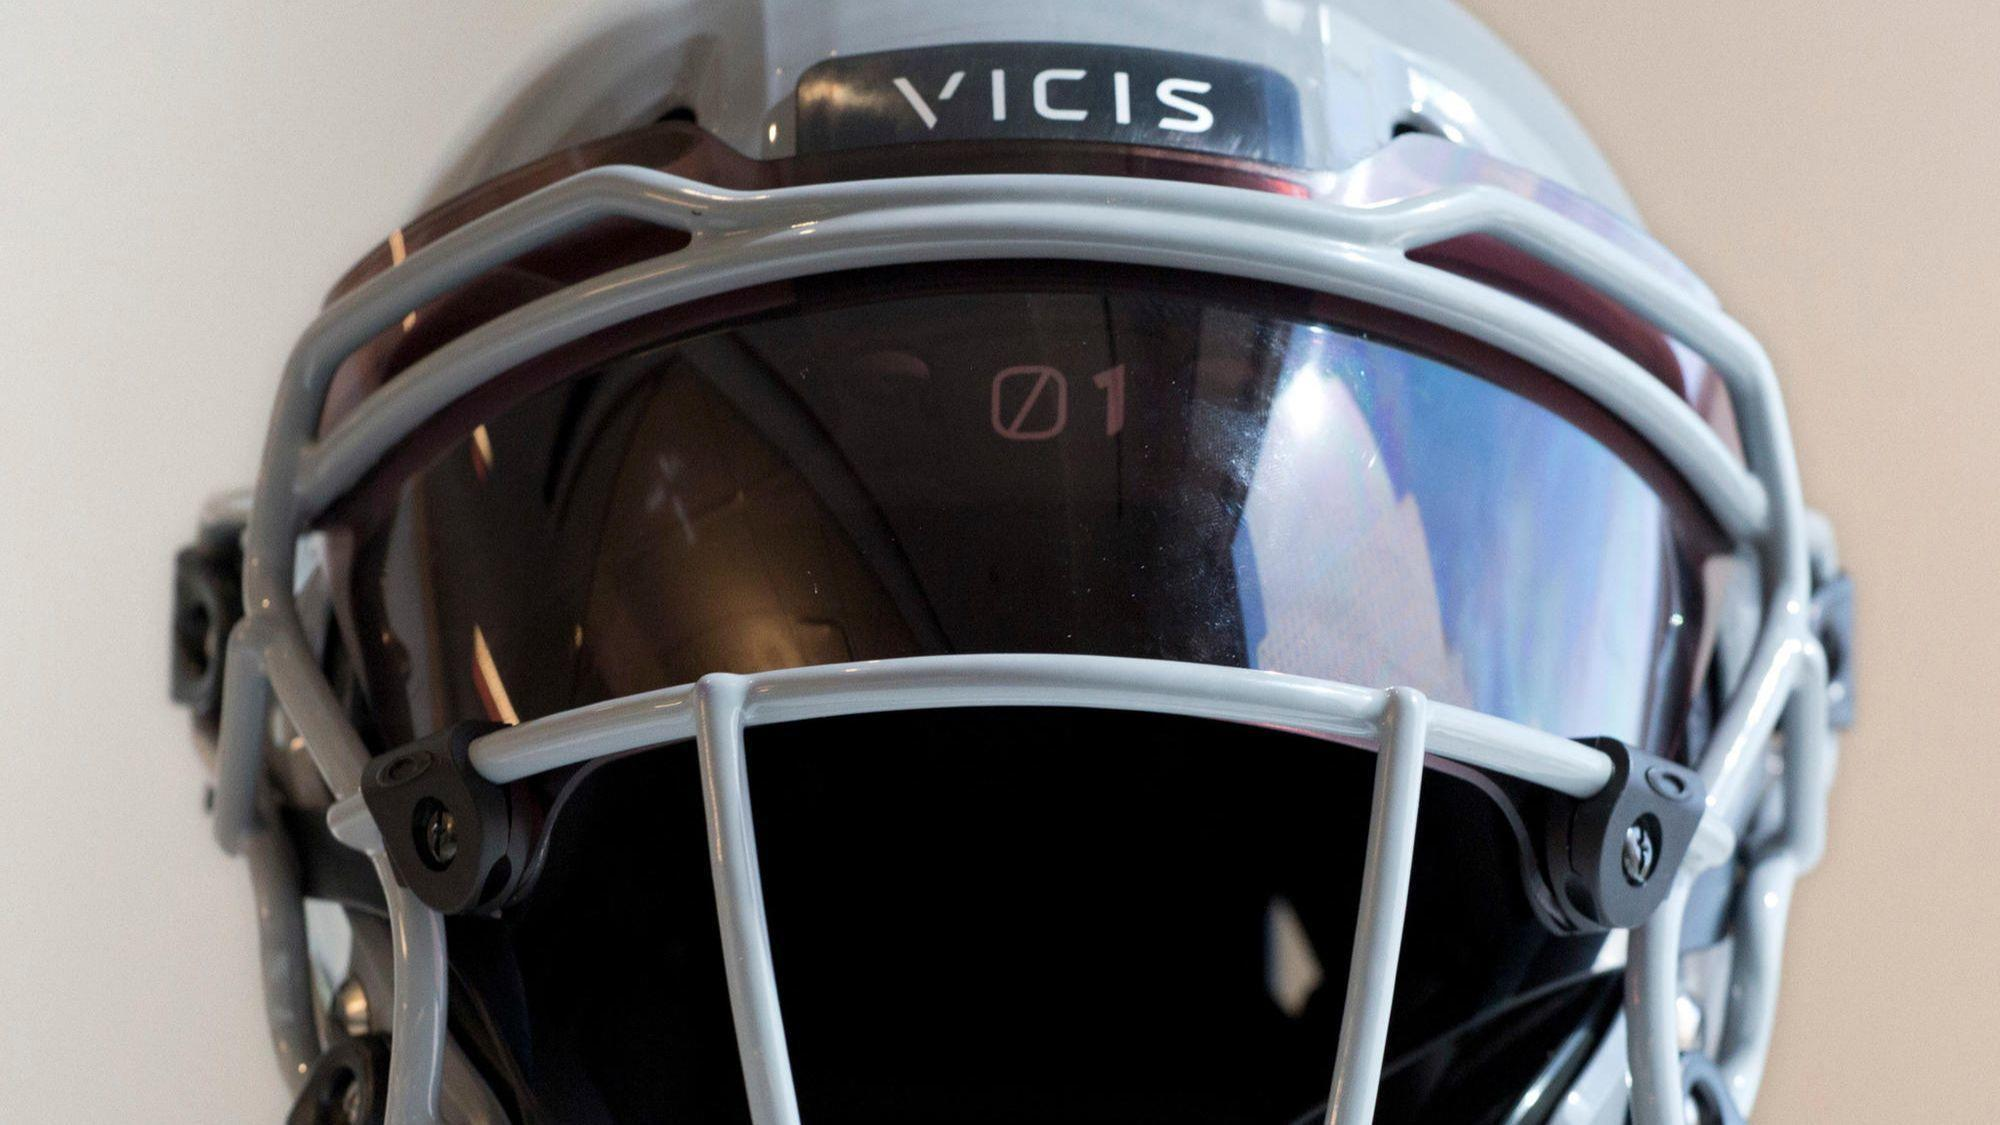 Nfl Bans Low Performing Helmets In Battle Against Ongoing